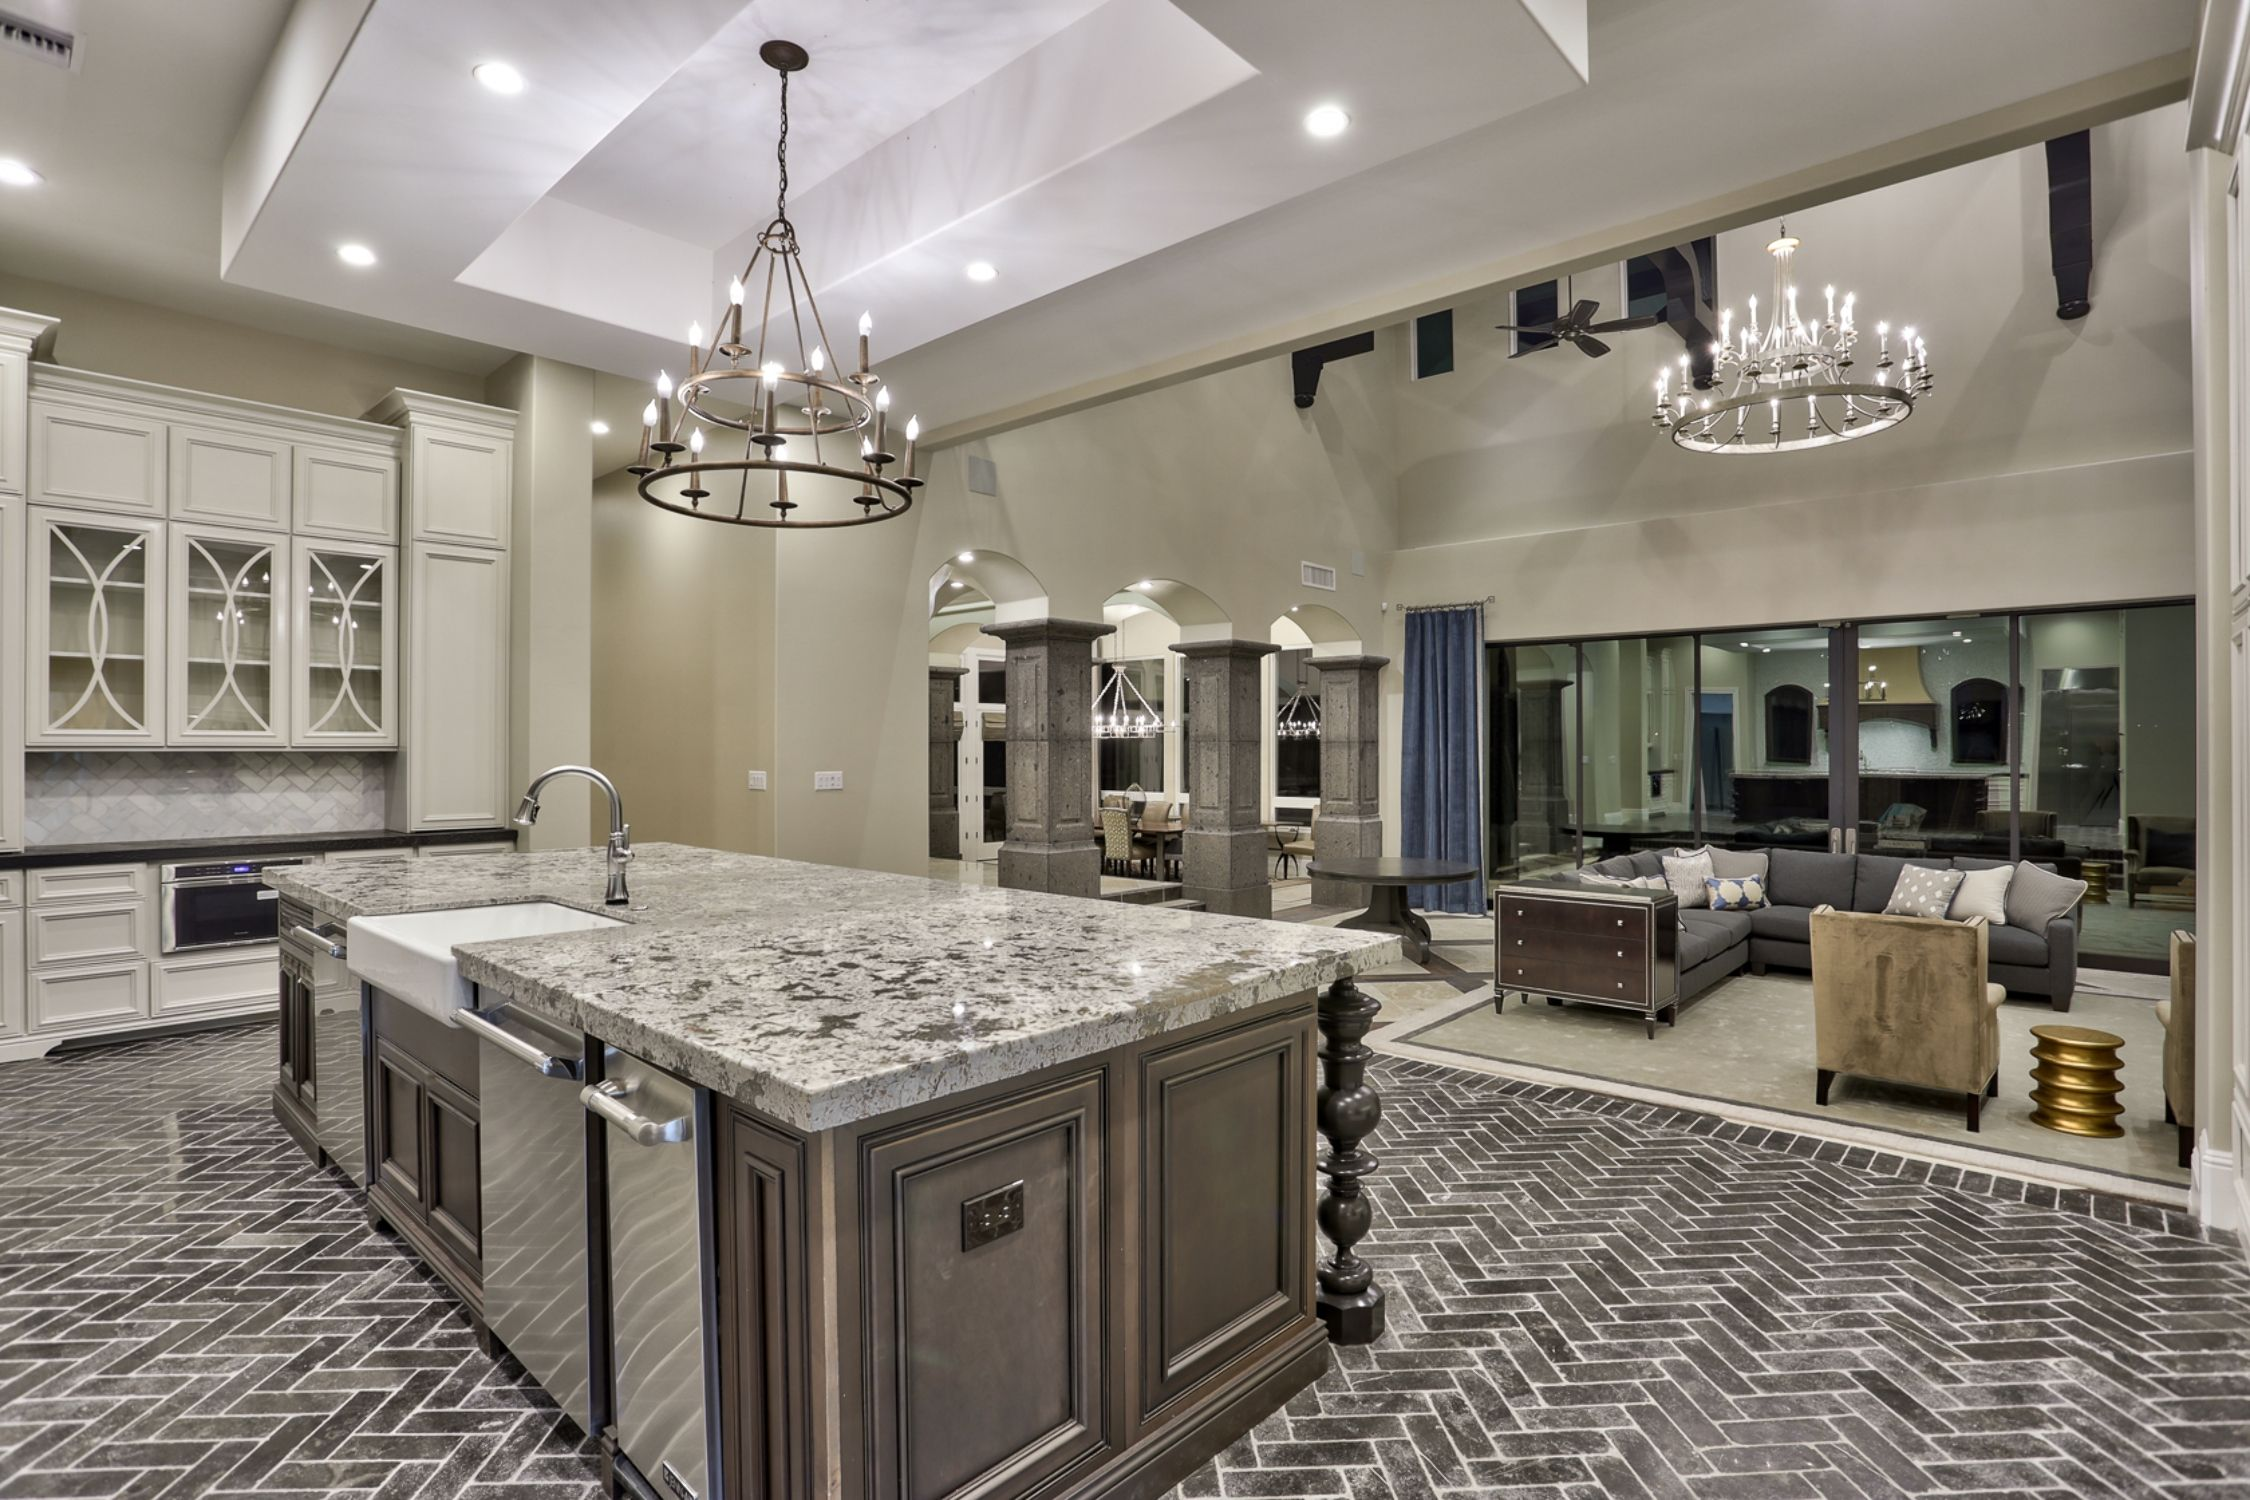 Superieur Transitional Home Design   Gourmet Kitchen   Steps Down Into The Great Room  Architectural Design: